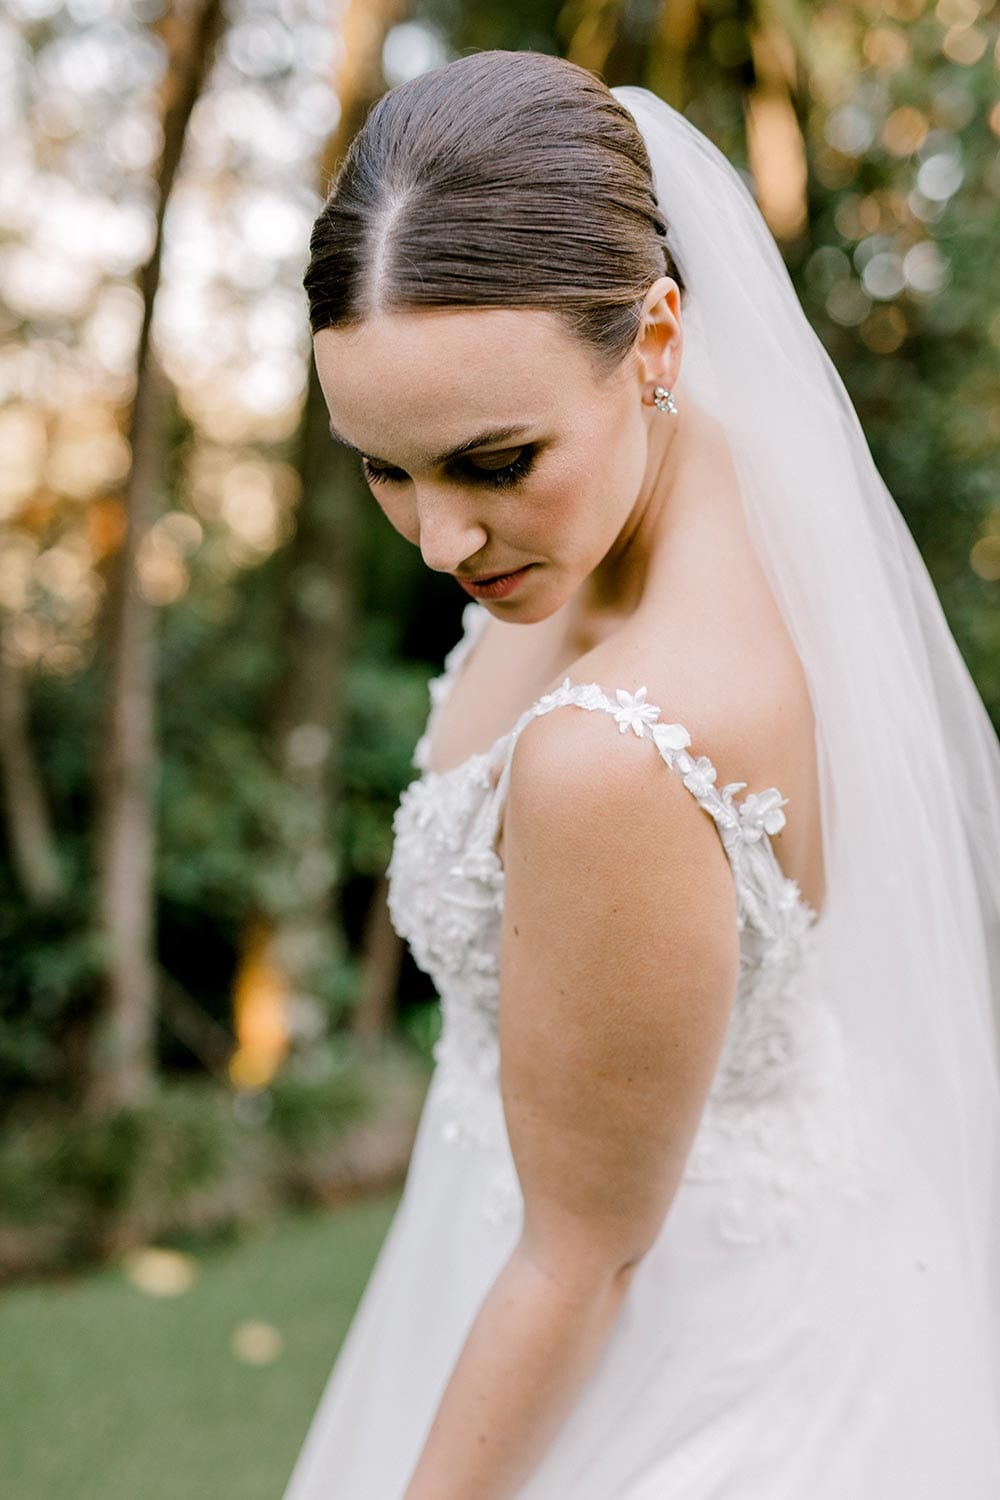 Serena Wedding Gown from Vinka Design - Classic & feminine wedding gown. Deep V-neckline semi-sheer structured bodice appliqued with flowers & leaves. Dreamy layered soft tulle skirt with side-split. Close up detail of bodice and shoulder straps. Photograph in landscaped gardens.